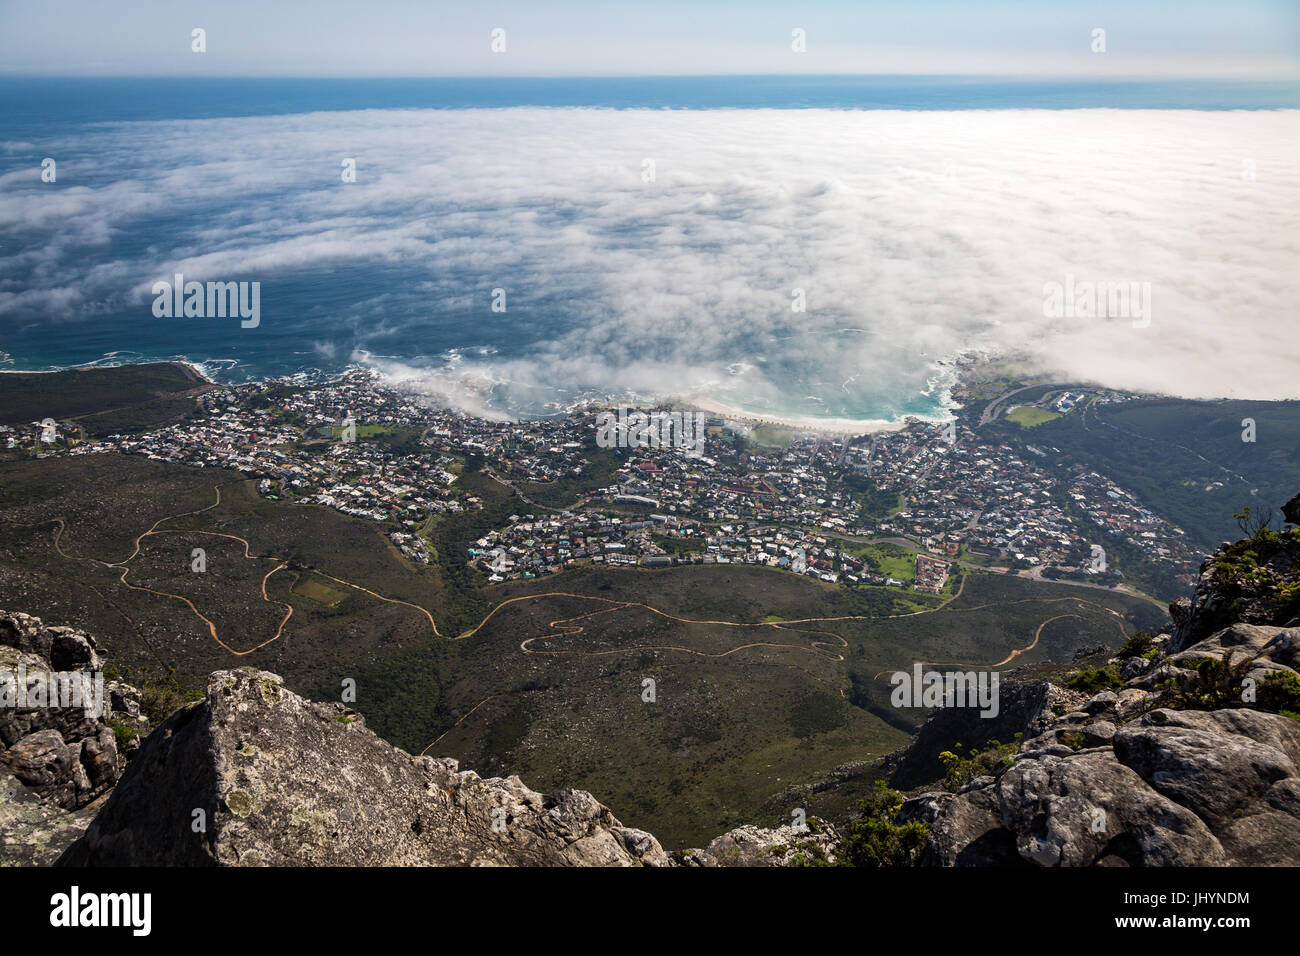 The view from Table Mountain over Camps Bay covered in low cloud, Cape Town, South Africa, Africa - Stock Image